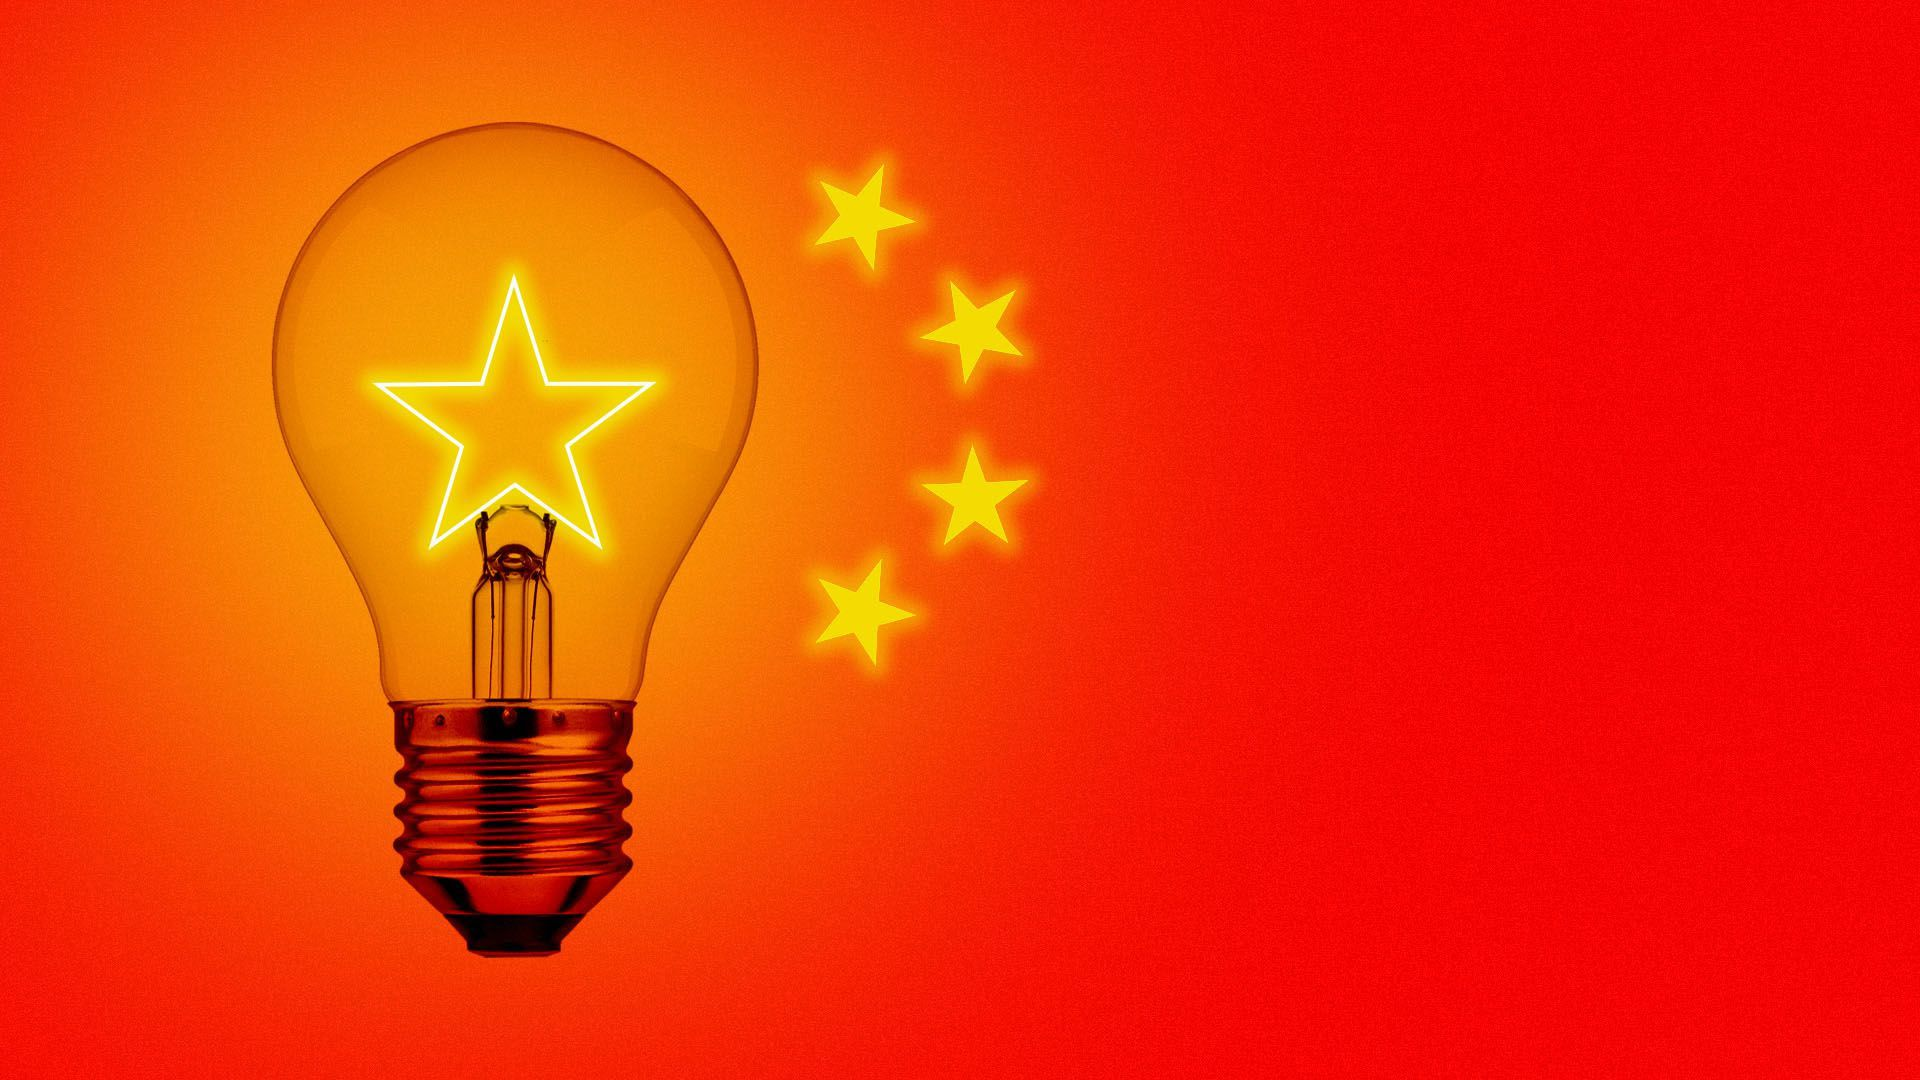 An illustration of a lightbulb with the stars of the chinese flag